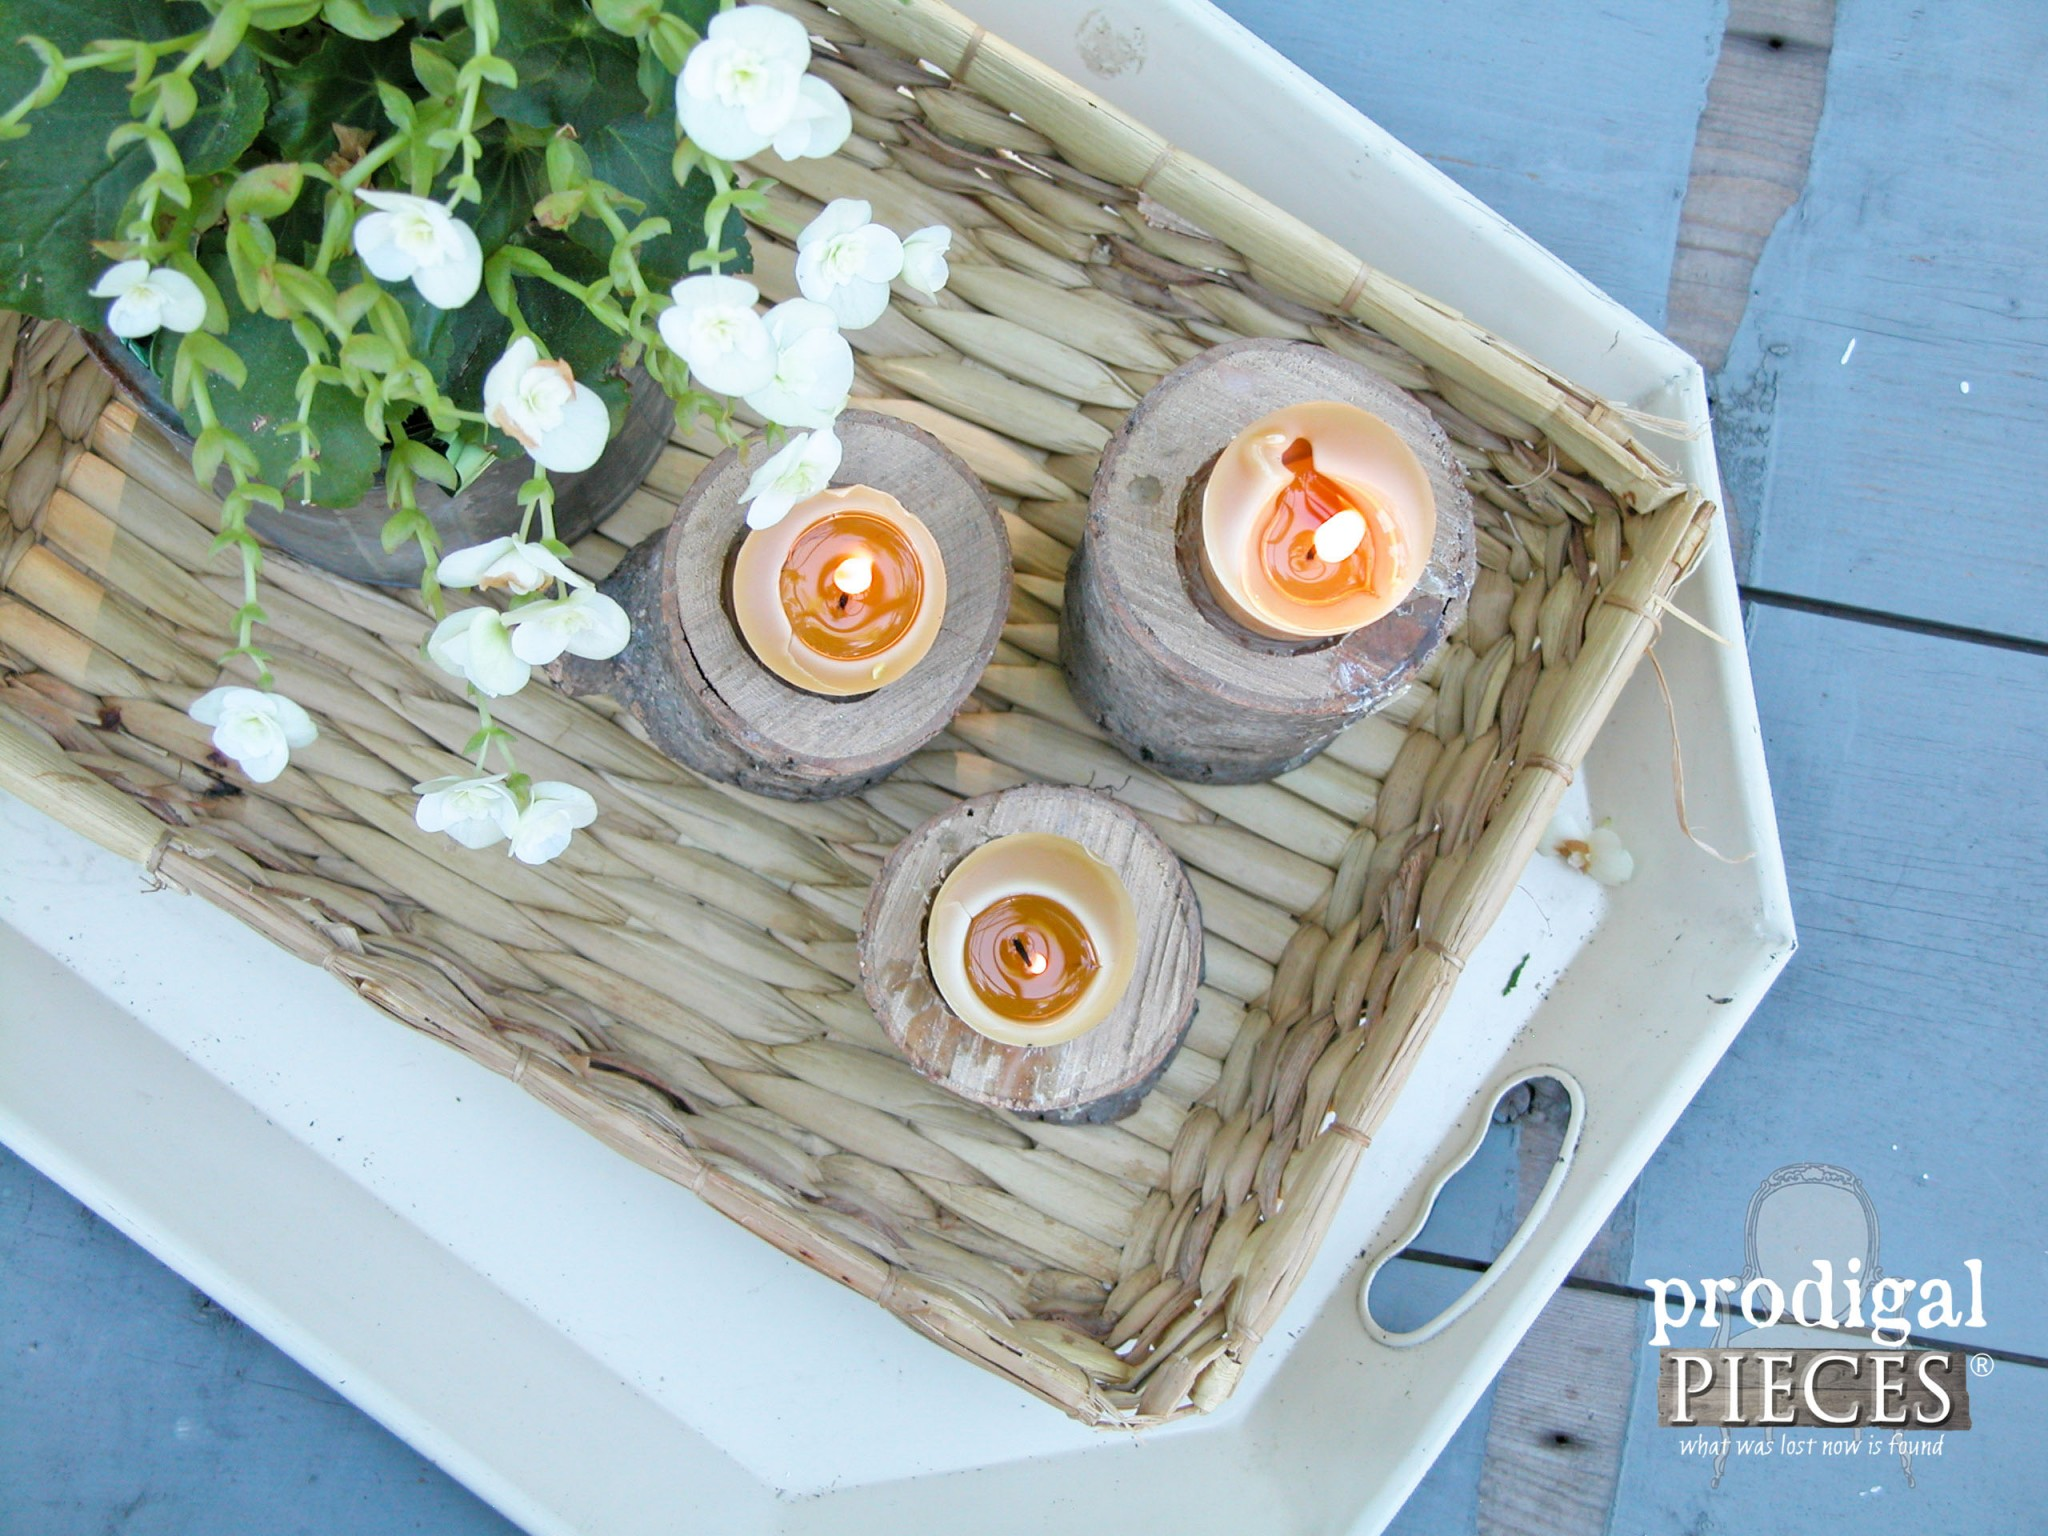 Top View of Rustic Log Candlesticks | Prodigal Pieces | www.prodigalpieces.com